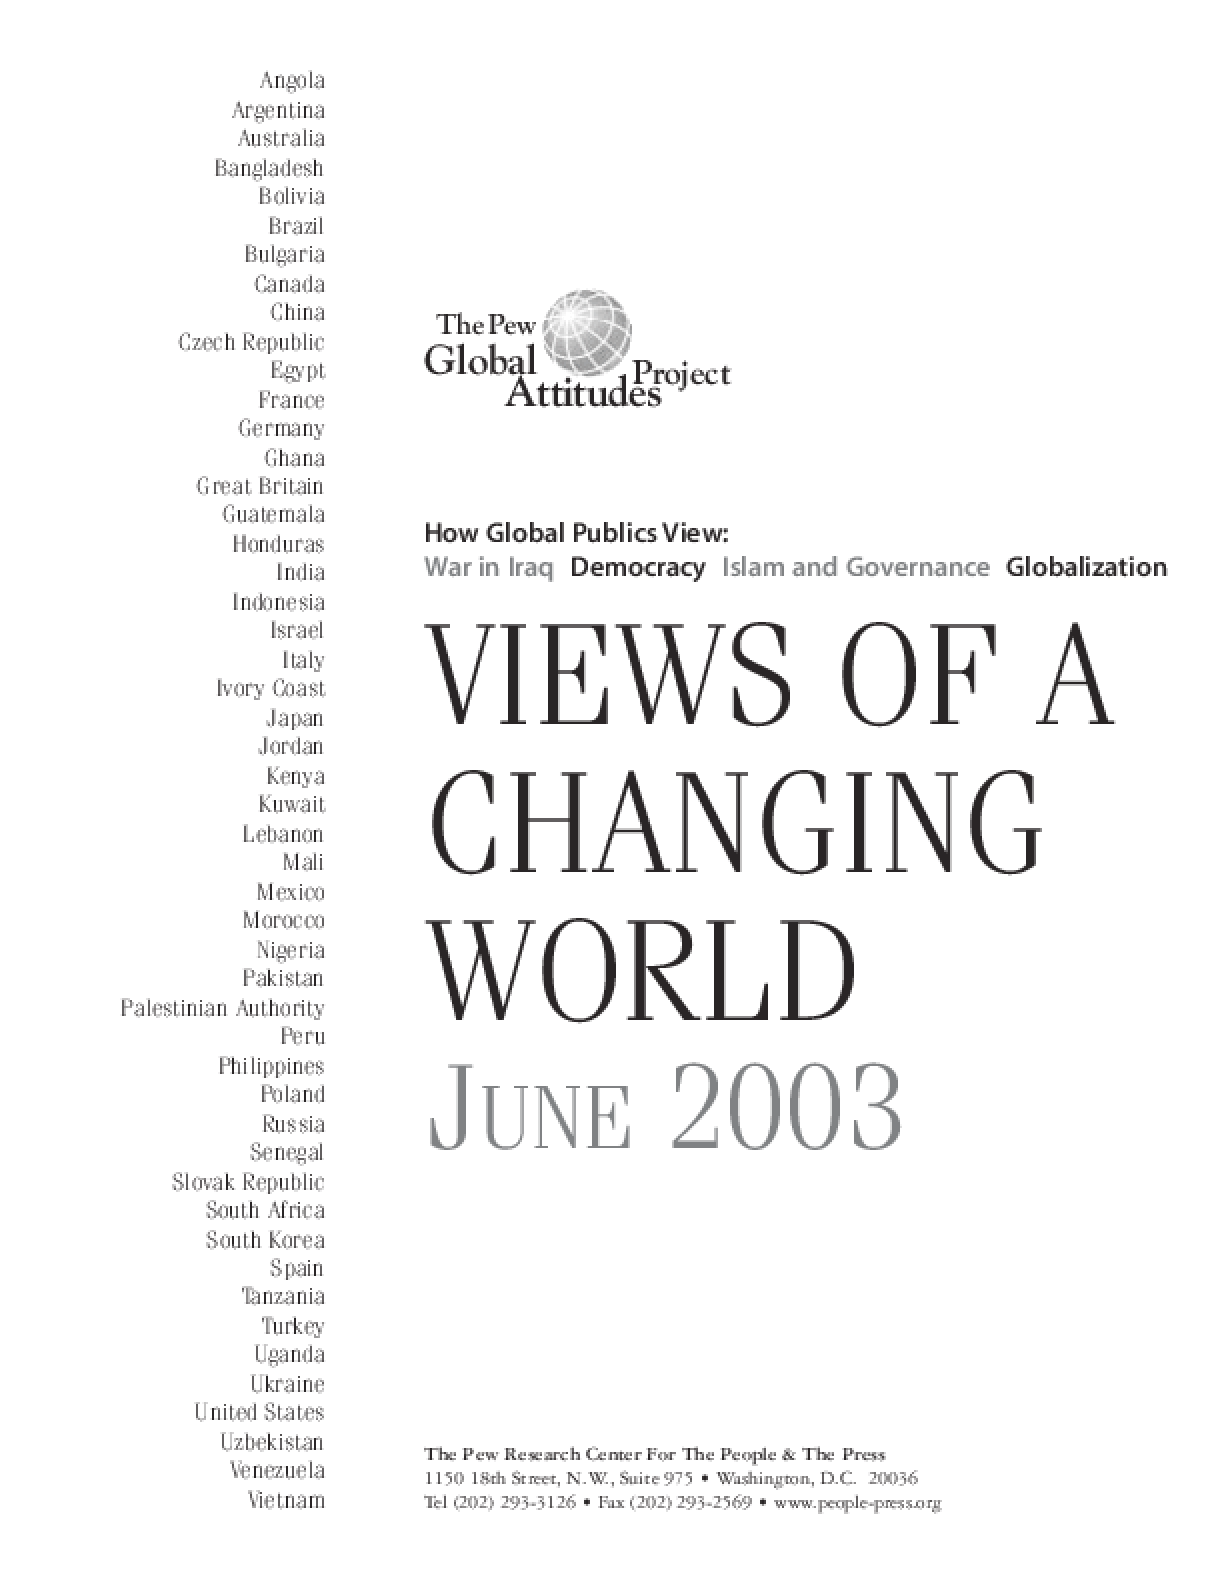 Views of a Changing World: June 2003